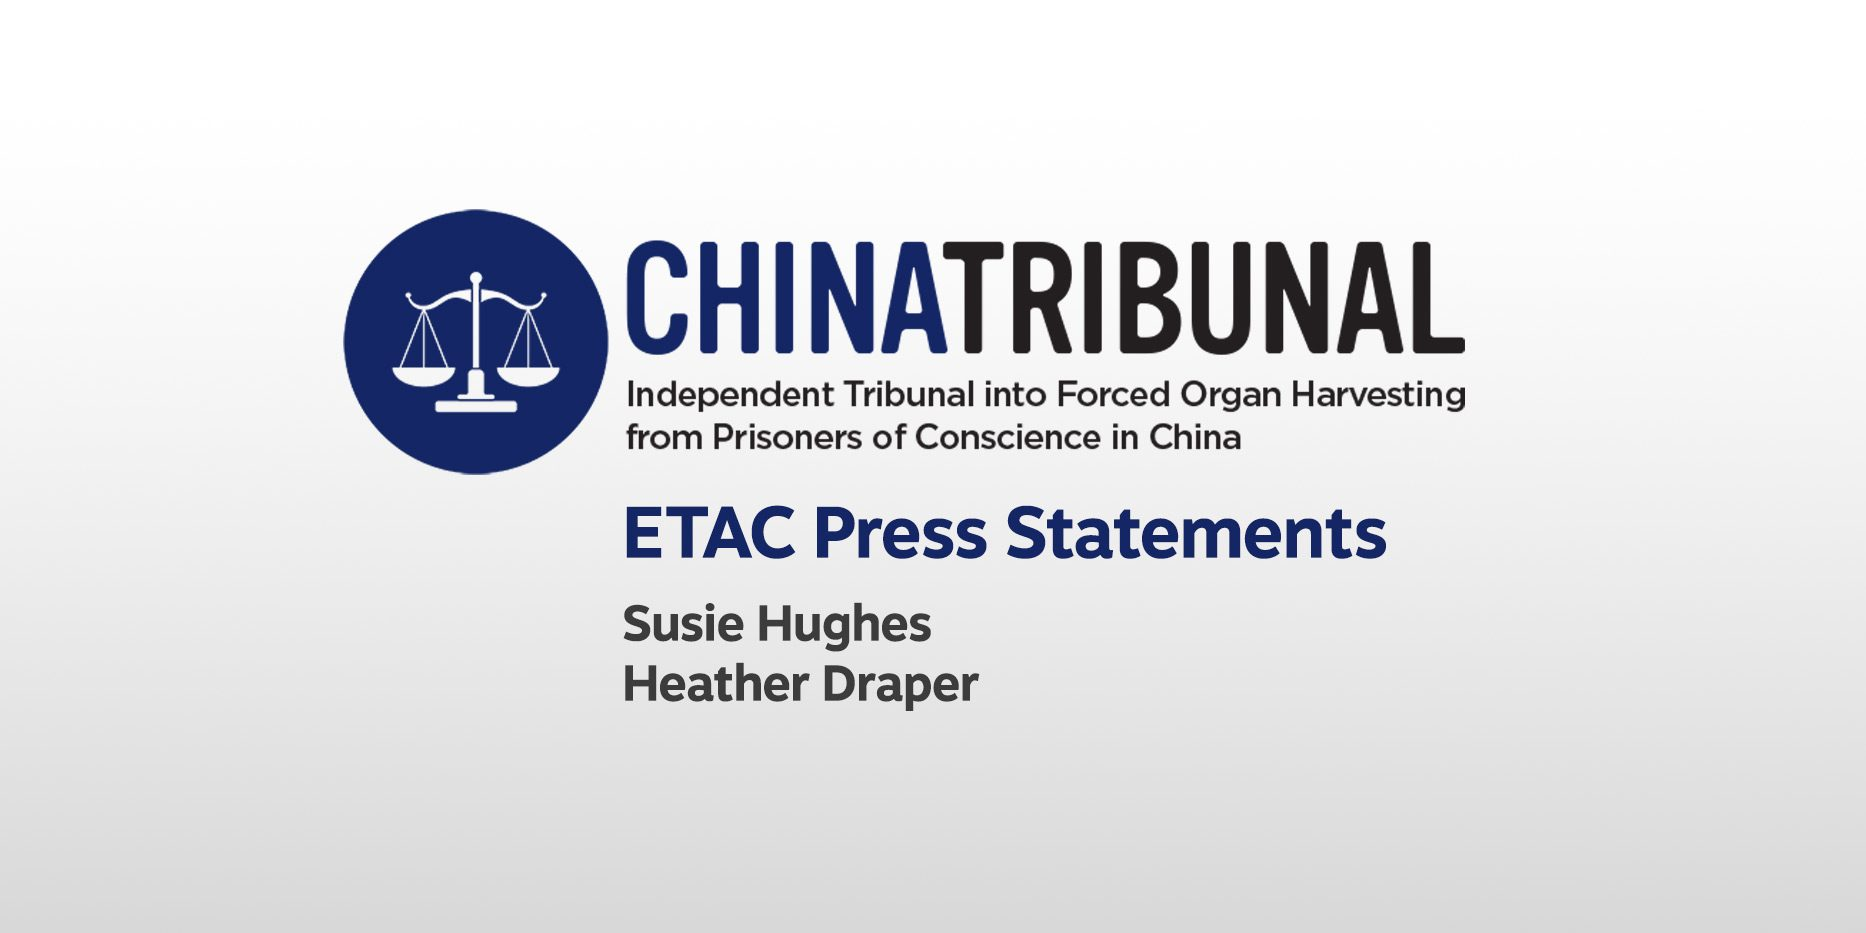 ETAC Press Statements for the Independent Tribunal into ...